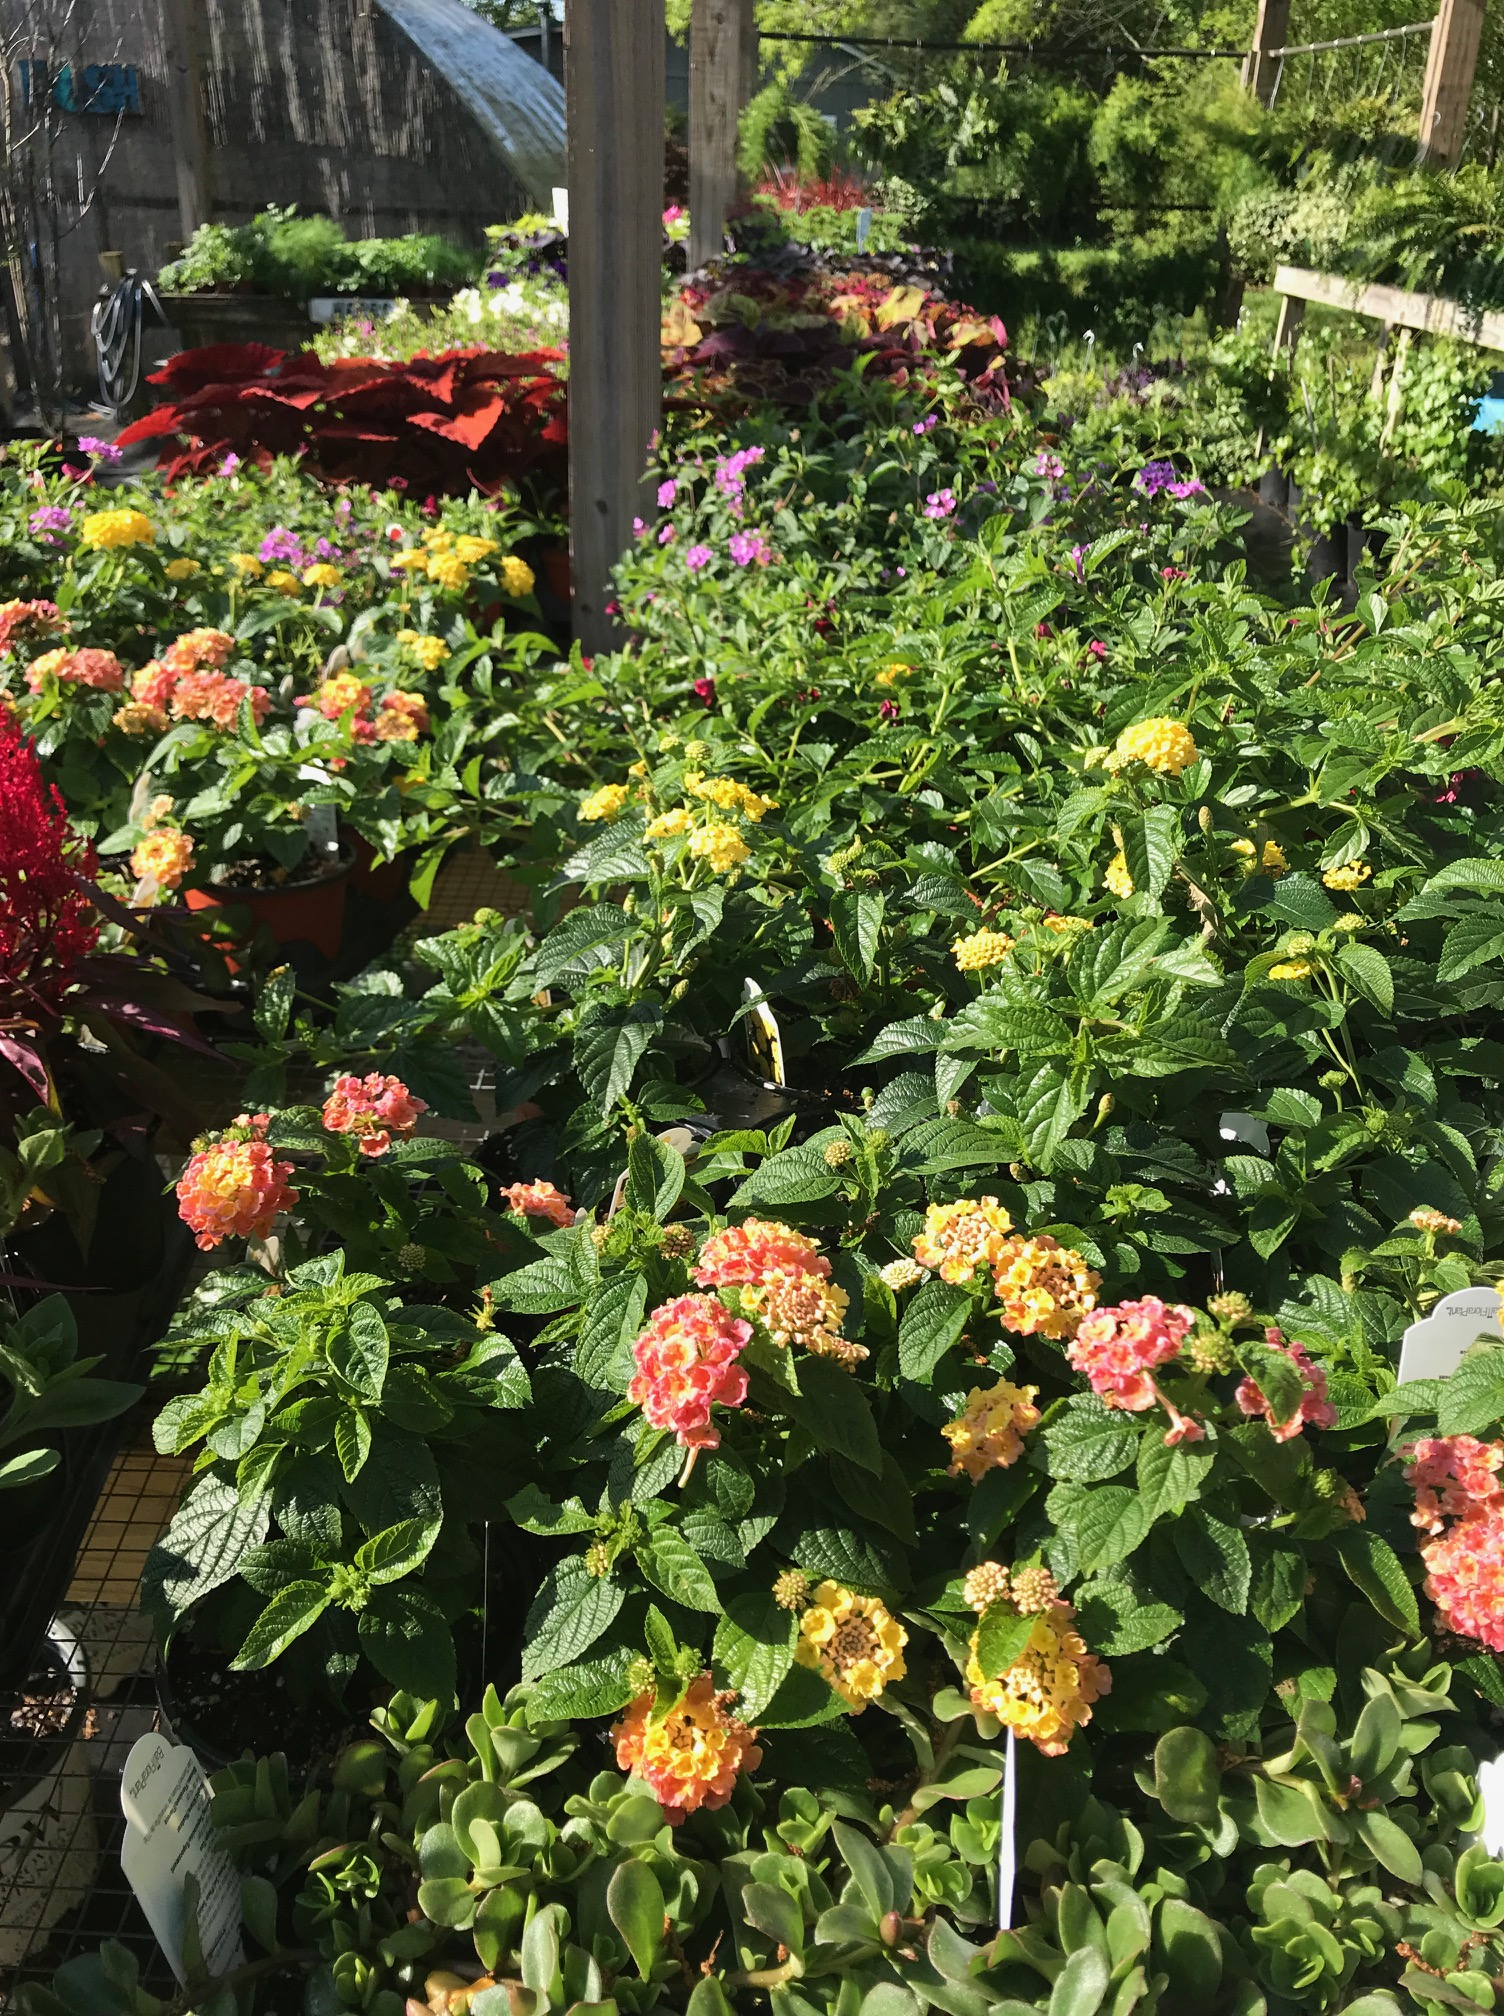 Come In For Special Deals On  Annuals, Perennials, Vegetables, Herbs,  Aquatic Plants, Etc. | Carters Nursery, Pond U0026 Patio | Jackson, TN